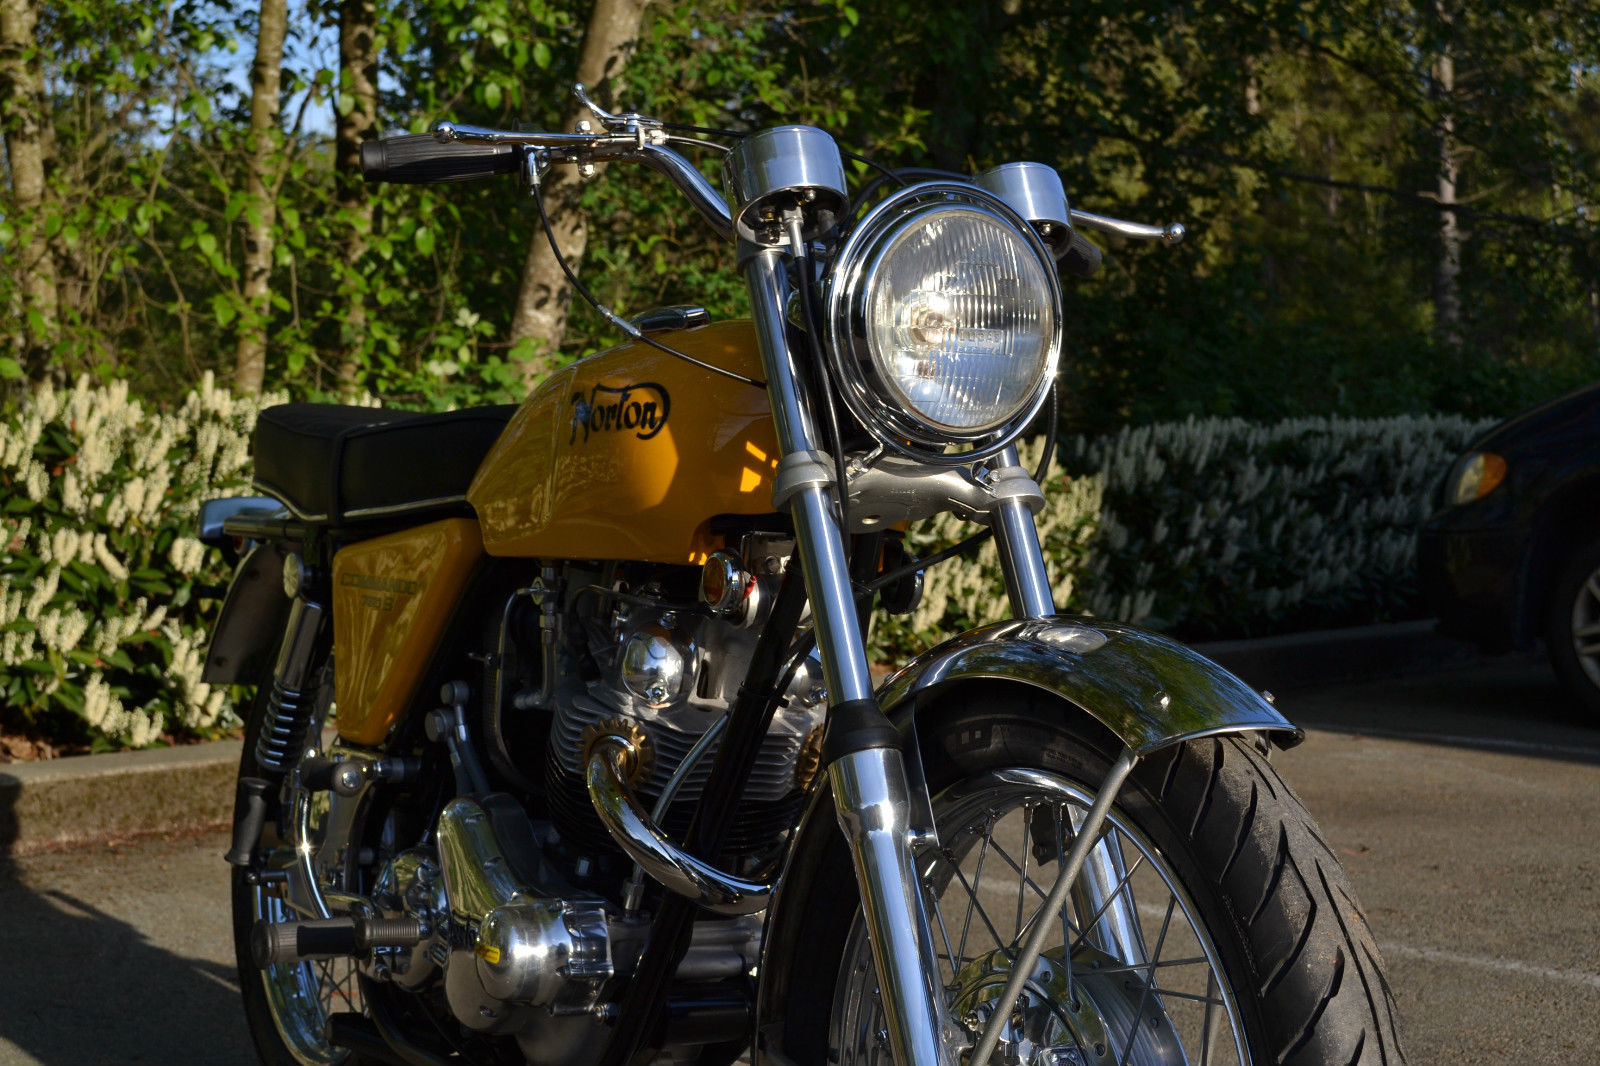 Norton Commando S-Type - 1969 - Front Forks, Front Wheel and Fender.